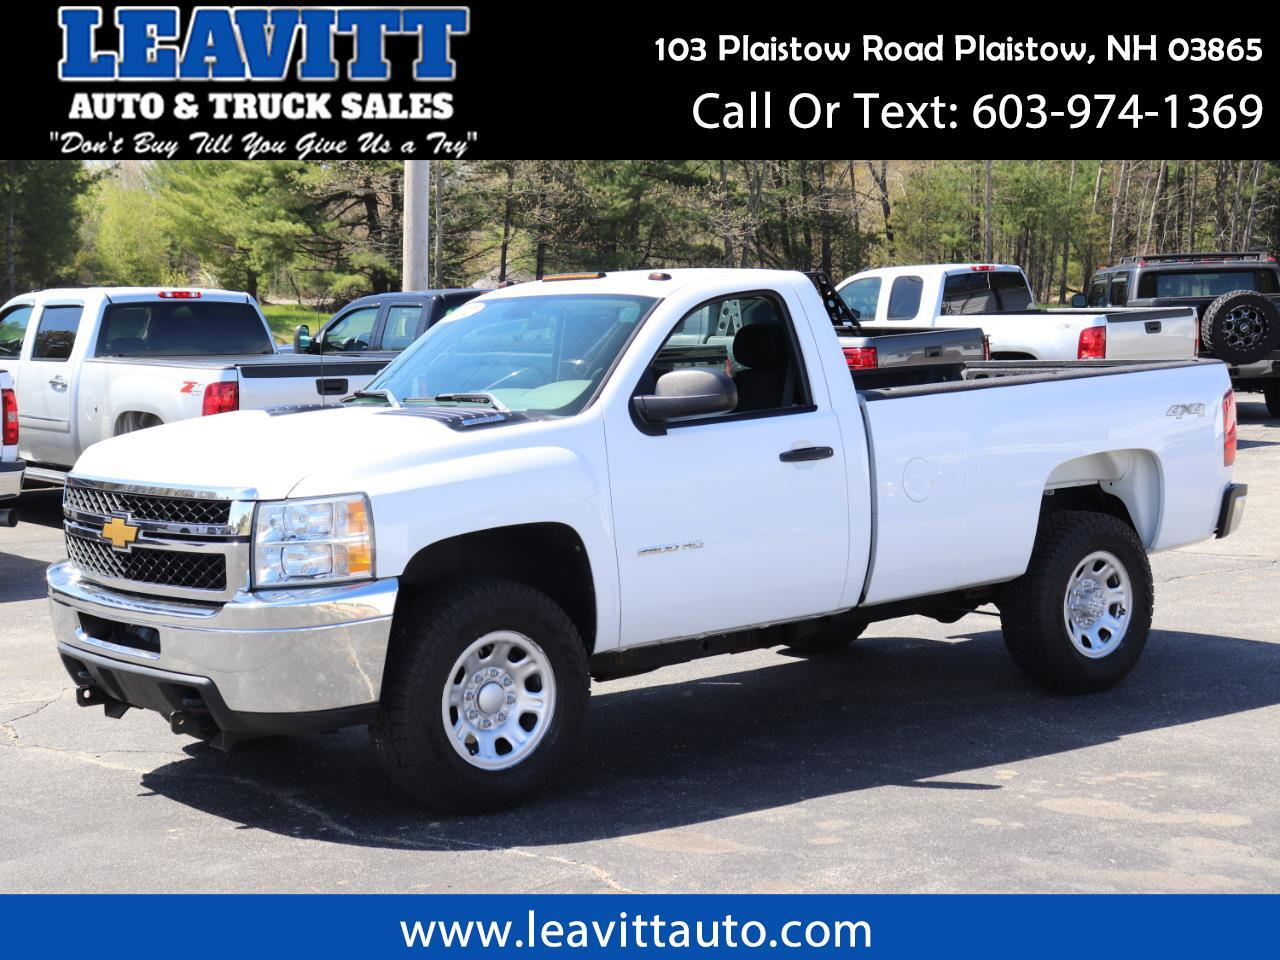 2012 Chevrolet Silverado 2500HD REGULAR CAB 4X4 65K MILES!